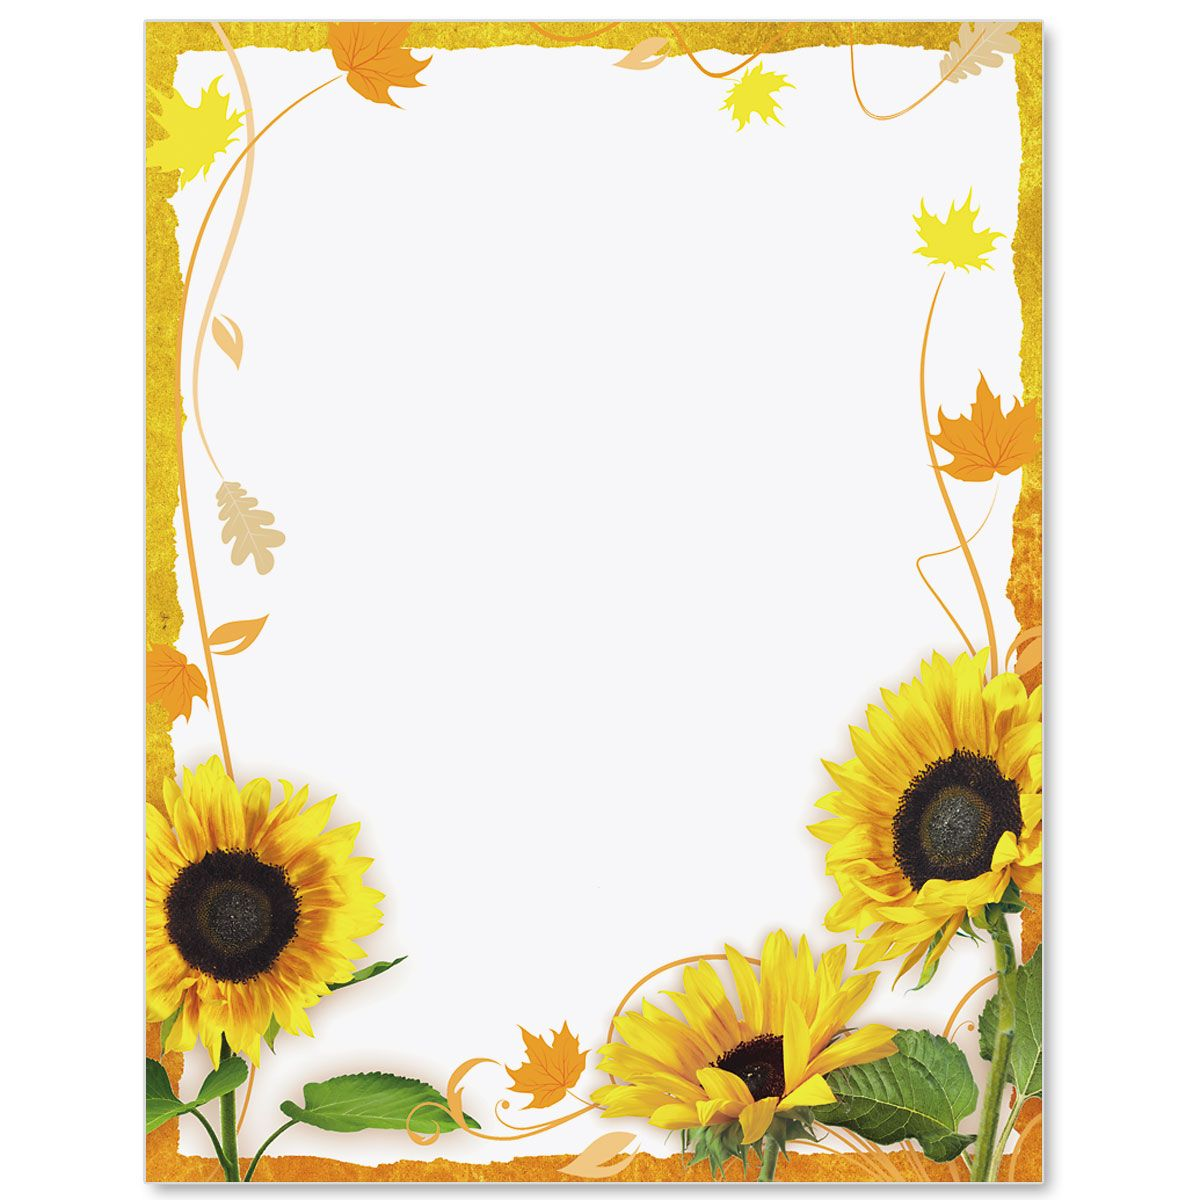 Sunflower papers scrap booking. Surprise clipart border